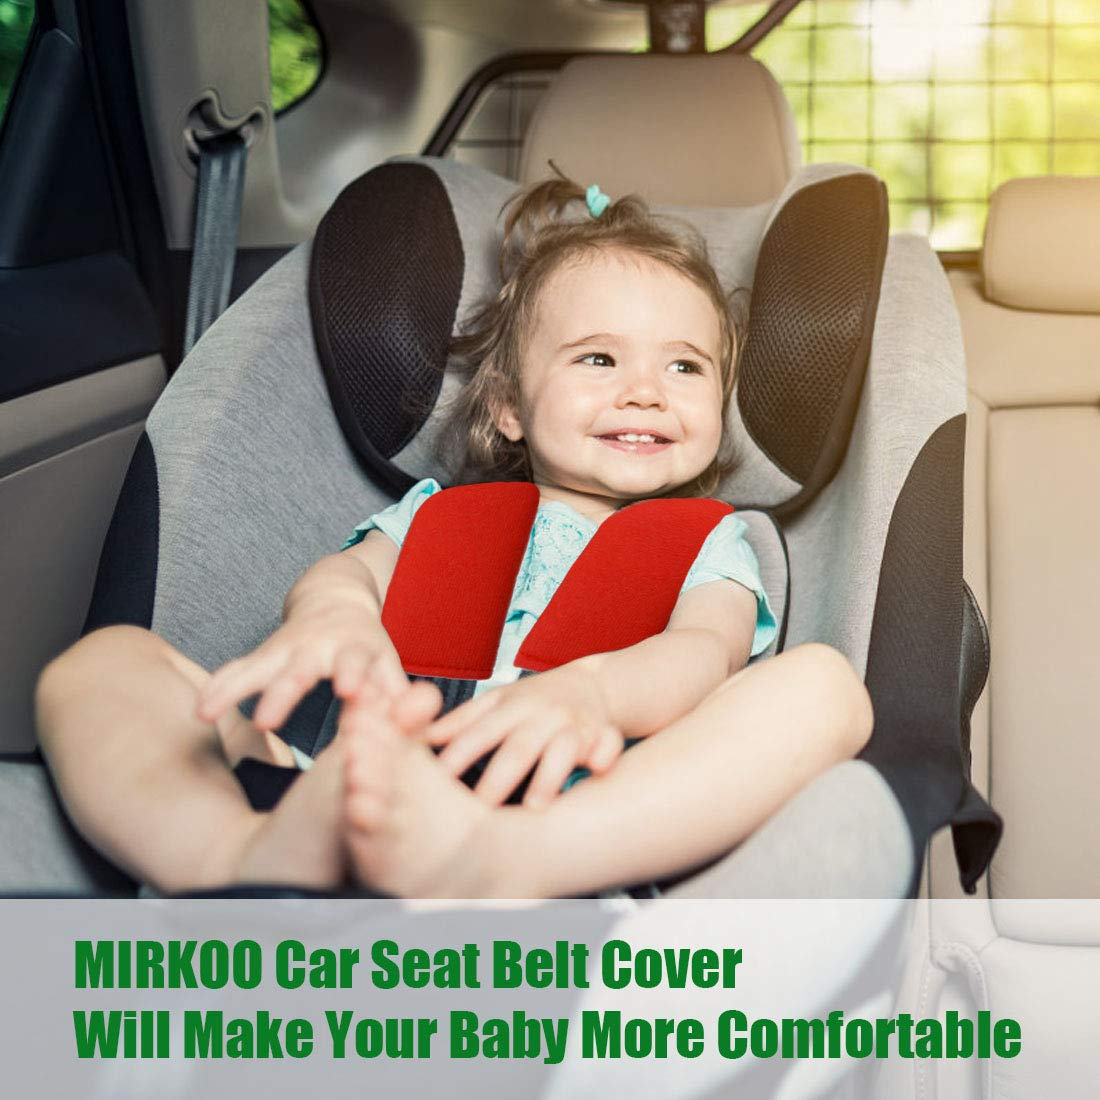 MIRKOO Car Seat Belt Cover Pad Laptop Computer Bag Red-4P Shoulder Bag Suitable for Car Seat Belt 4-Pack Soft Car Safety Seat Belt Strap Shoulder Pad for Adults and Children Backpack